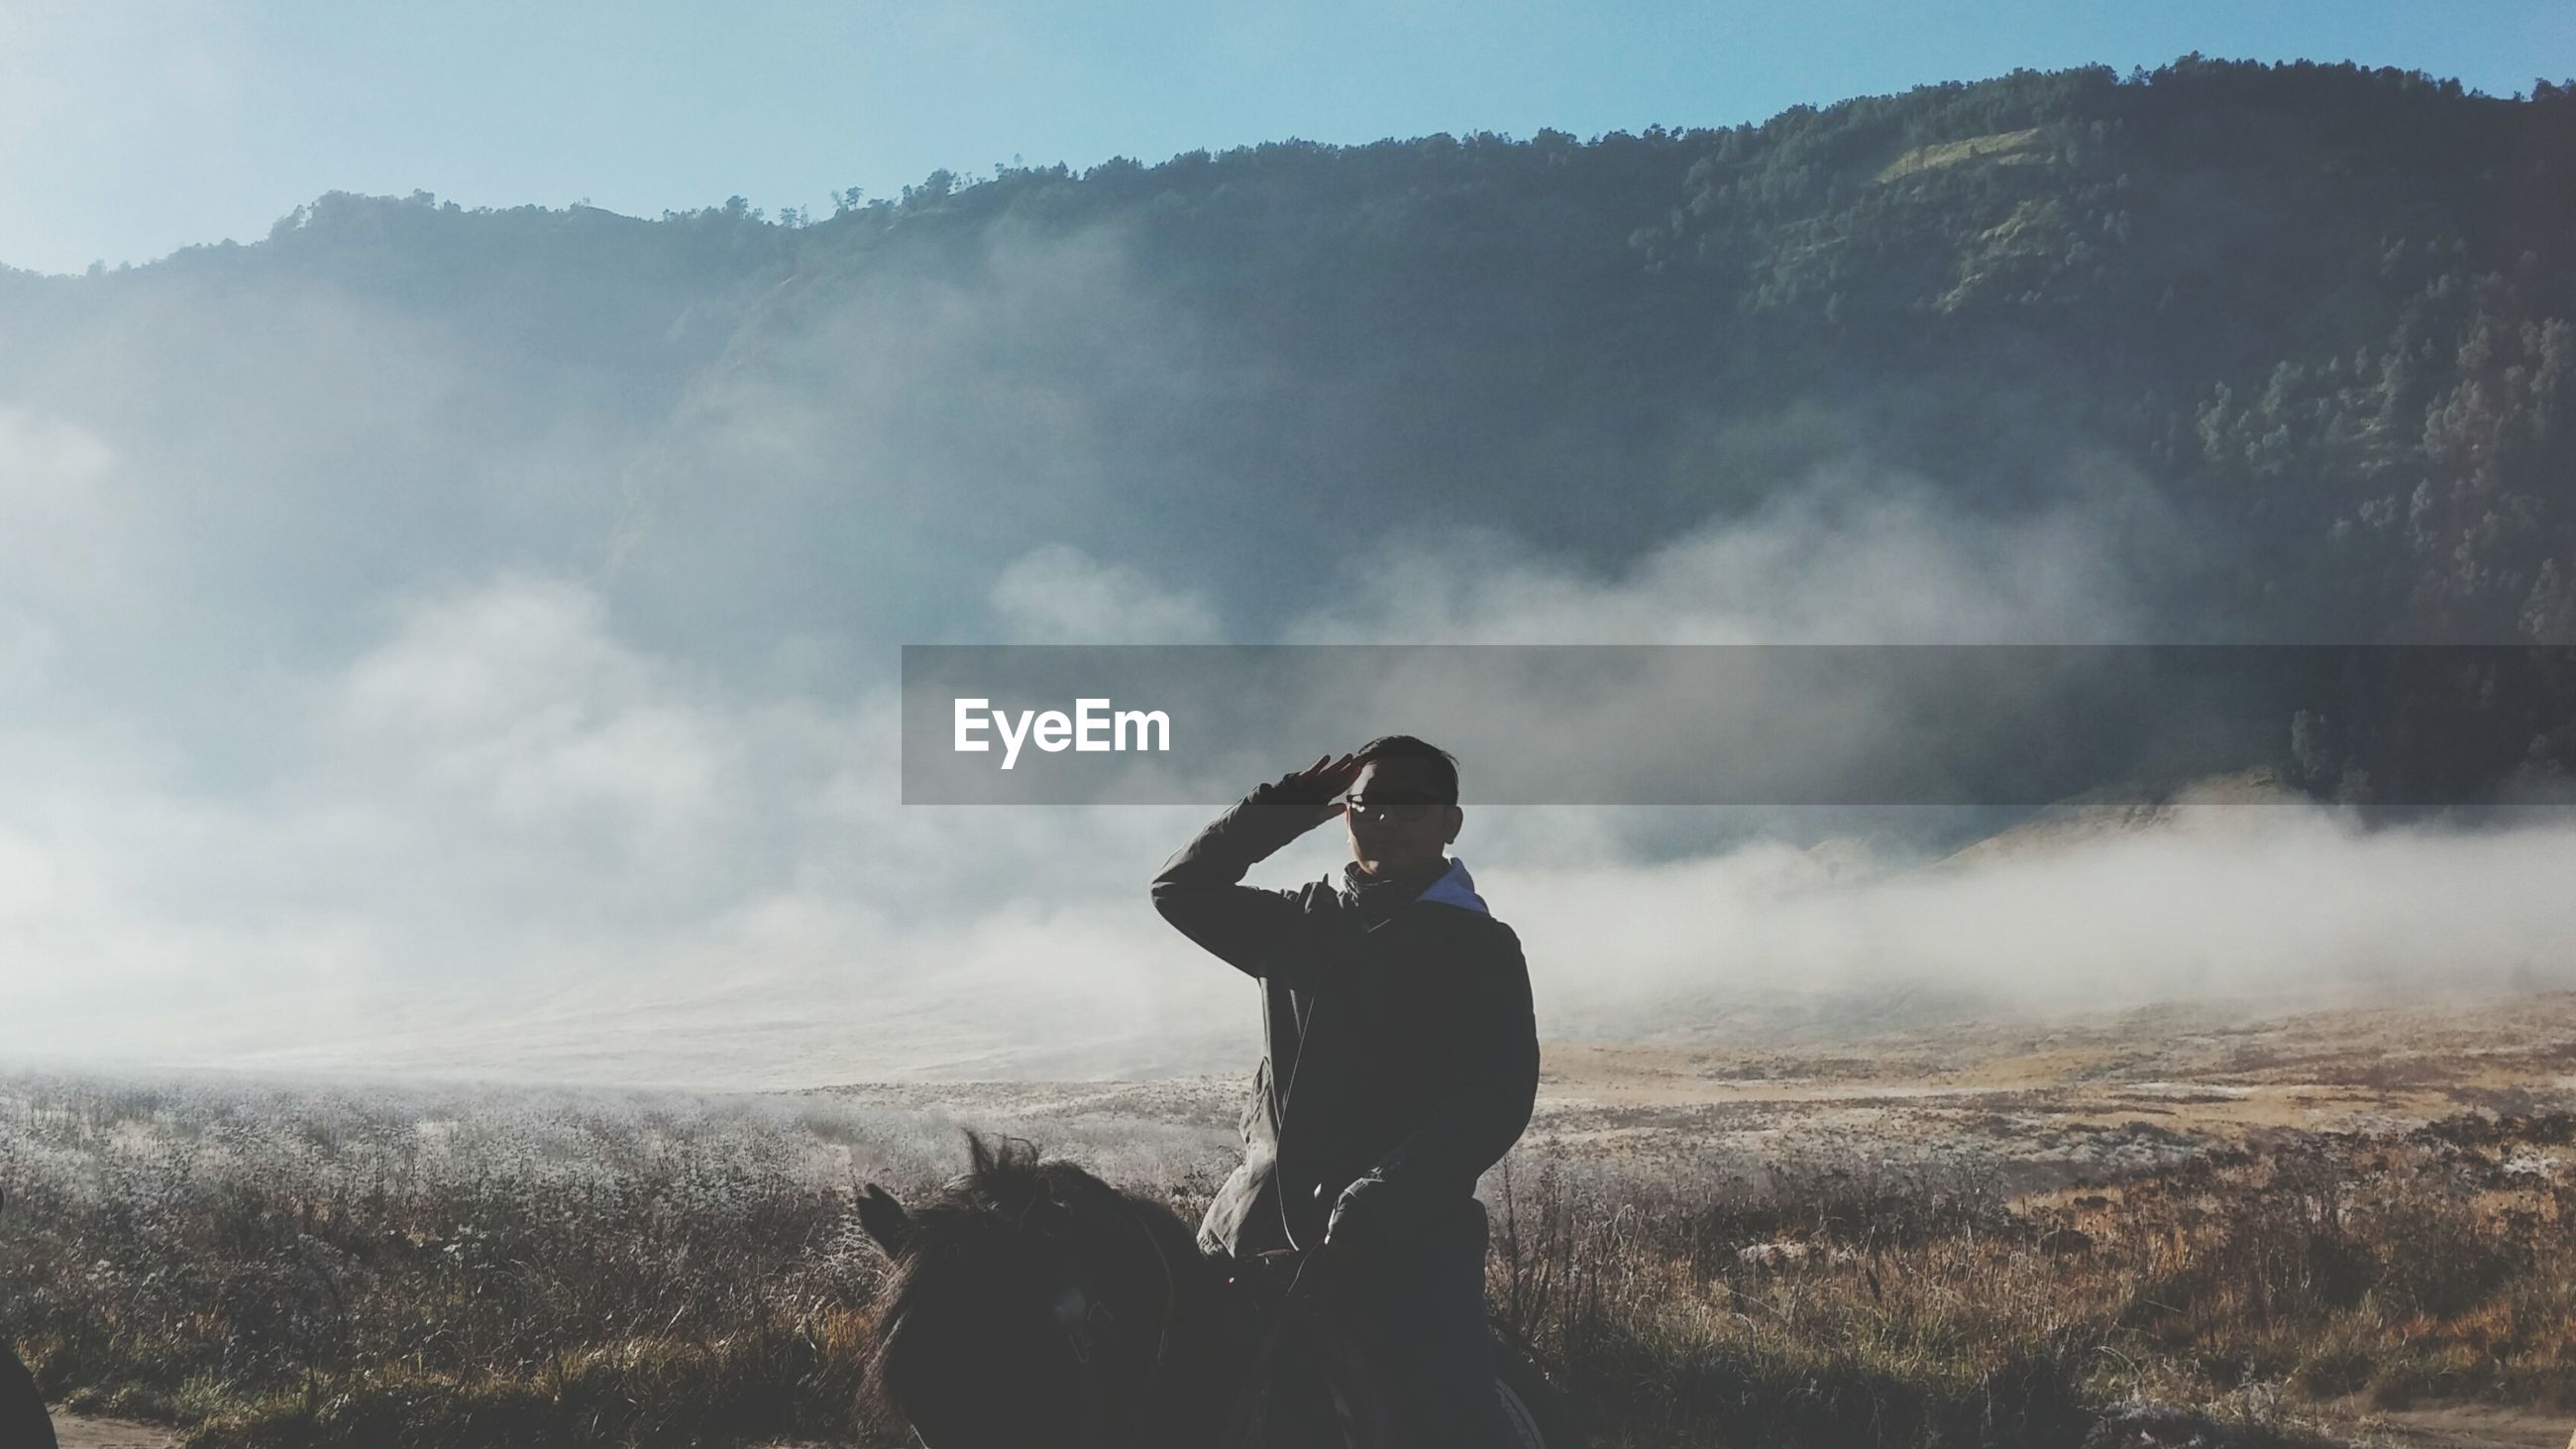 Man saluting while sitting on horse against mountains during foggy weather